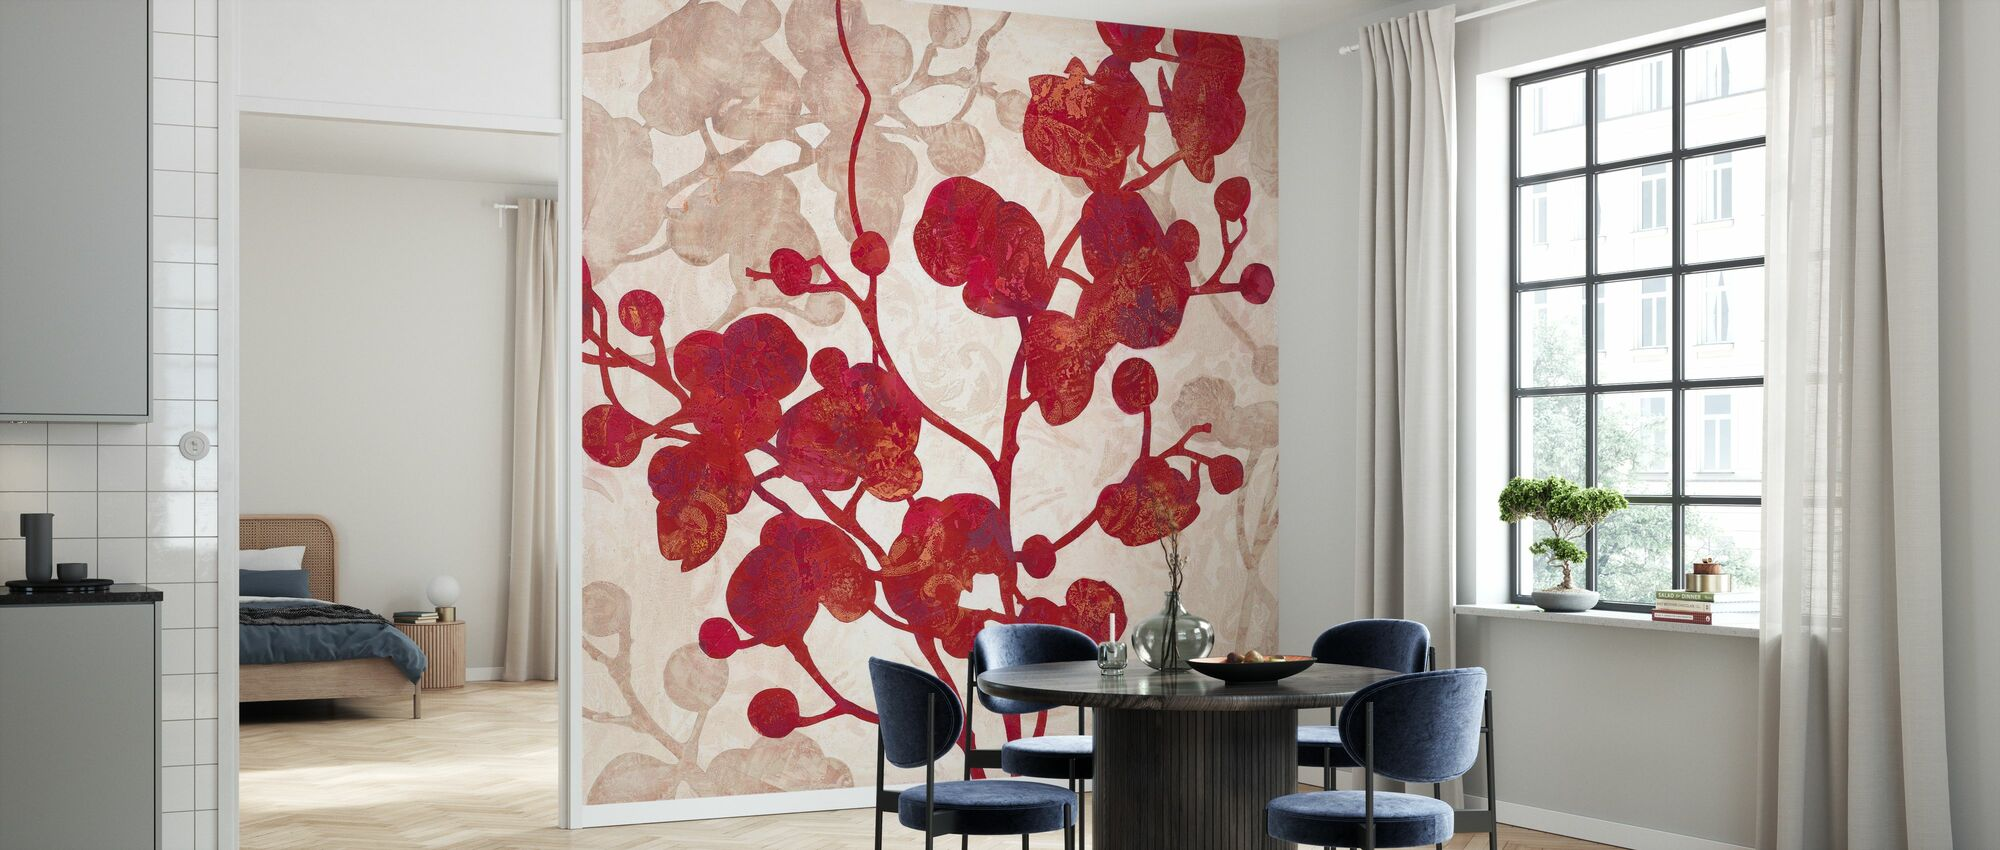 Luscious Orchid 2 - Wallpaper - Kitchen